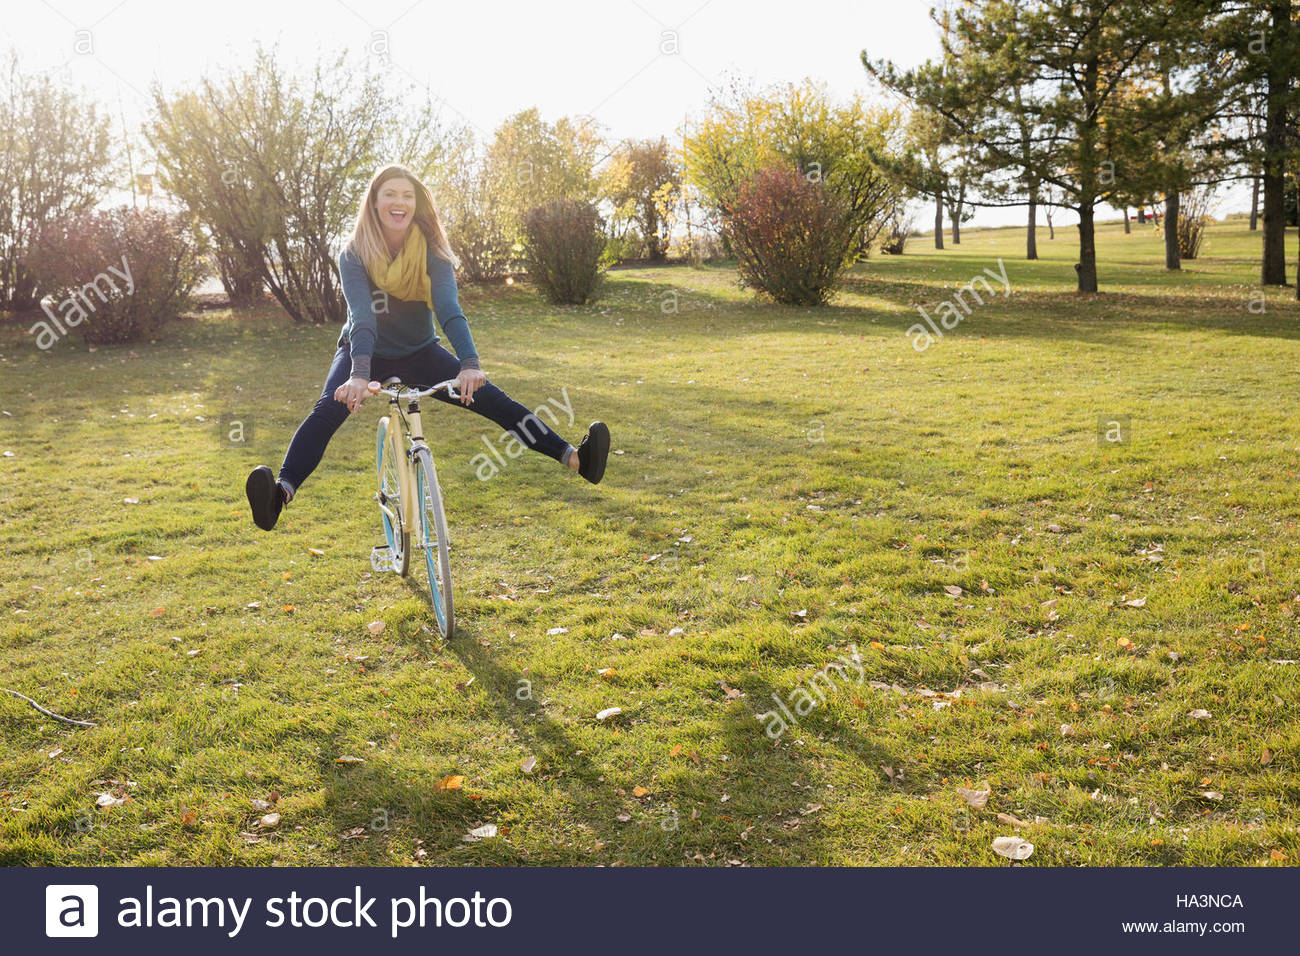 Playful woman riding bicycle in sunny autumn park - Stock Image